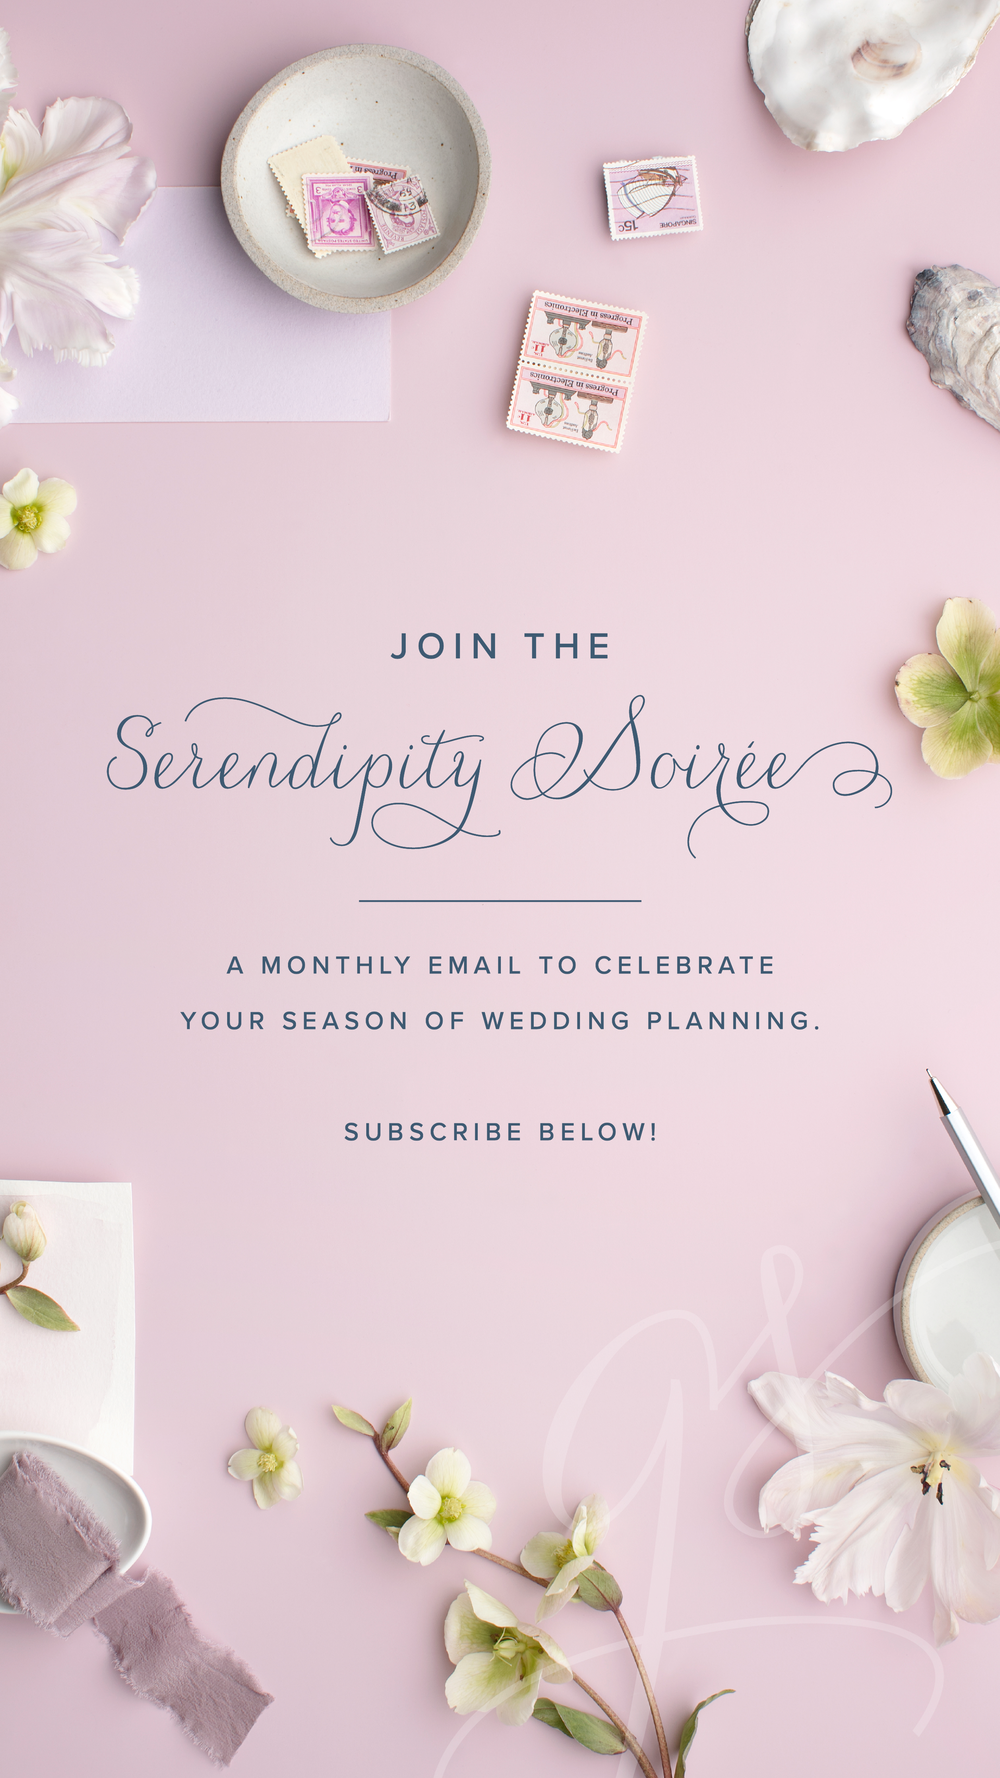 Join the Serendipity Soiree with Grace and Serendipity